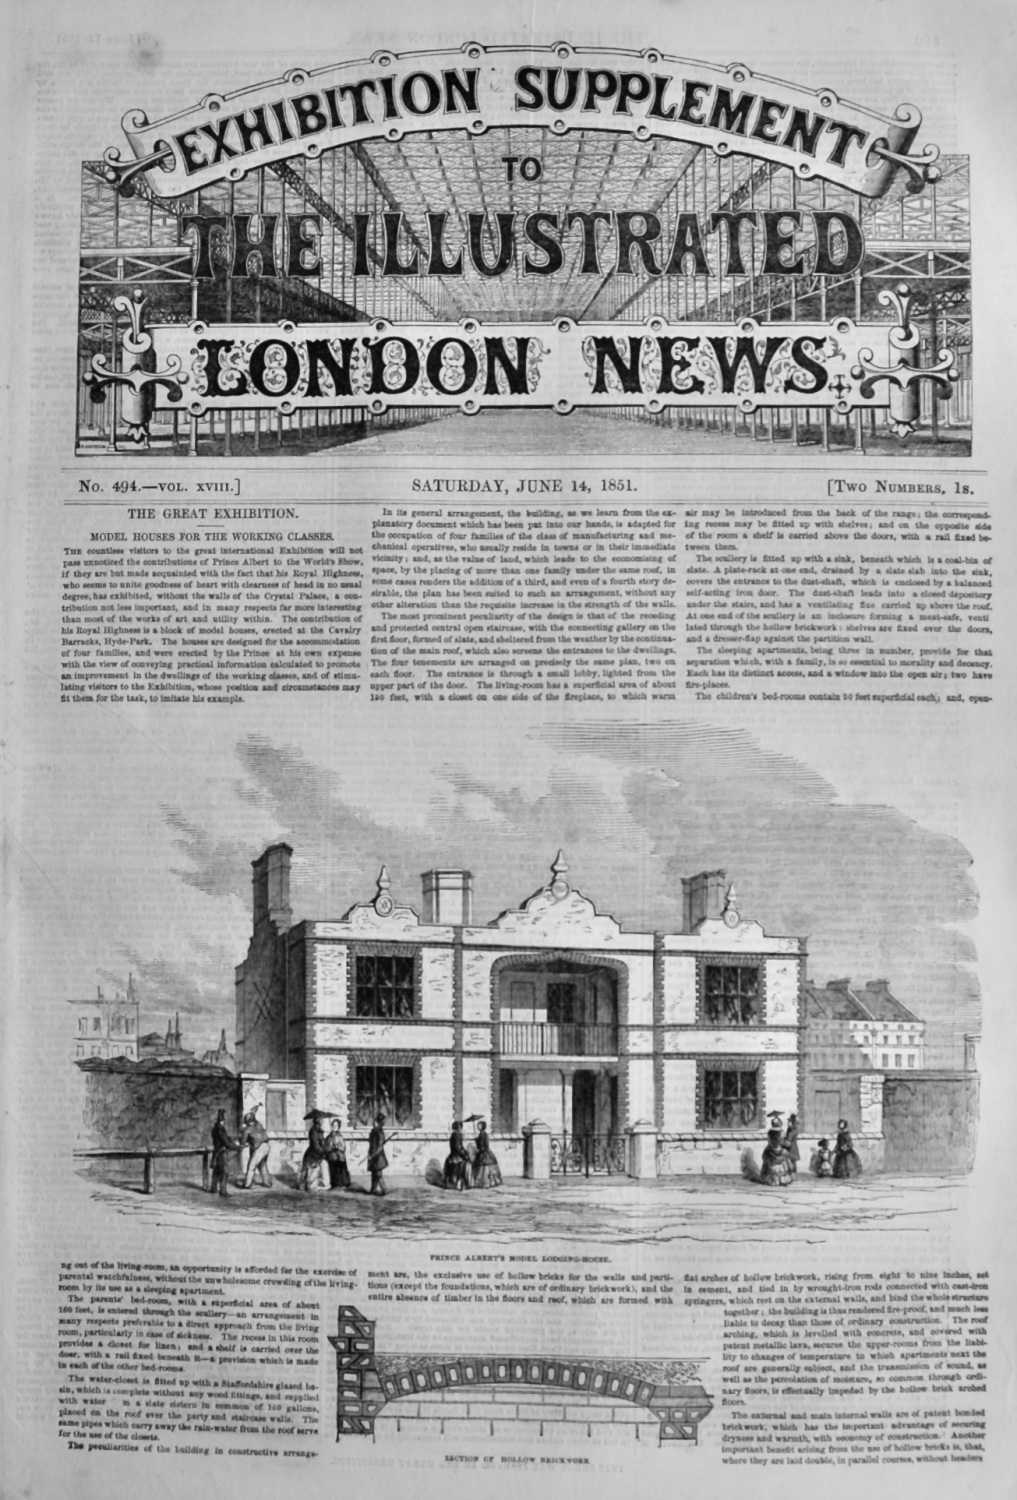 Great Exhibition Supplement to the Illustrated London News June 14th 1851.